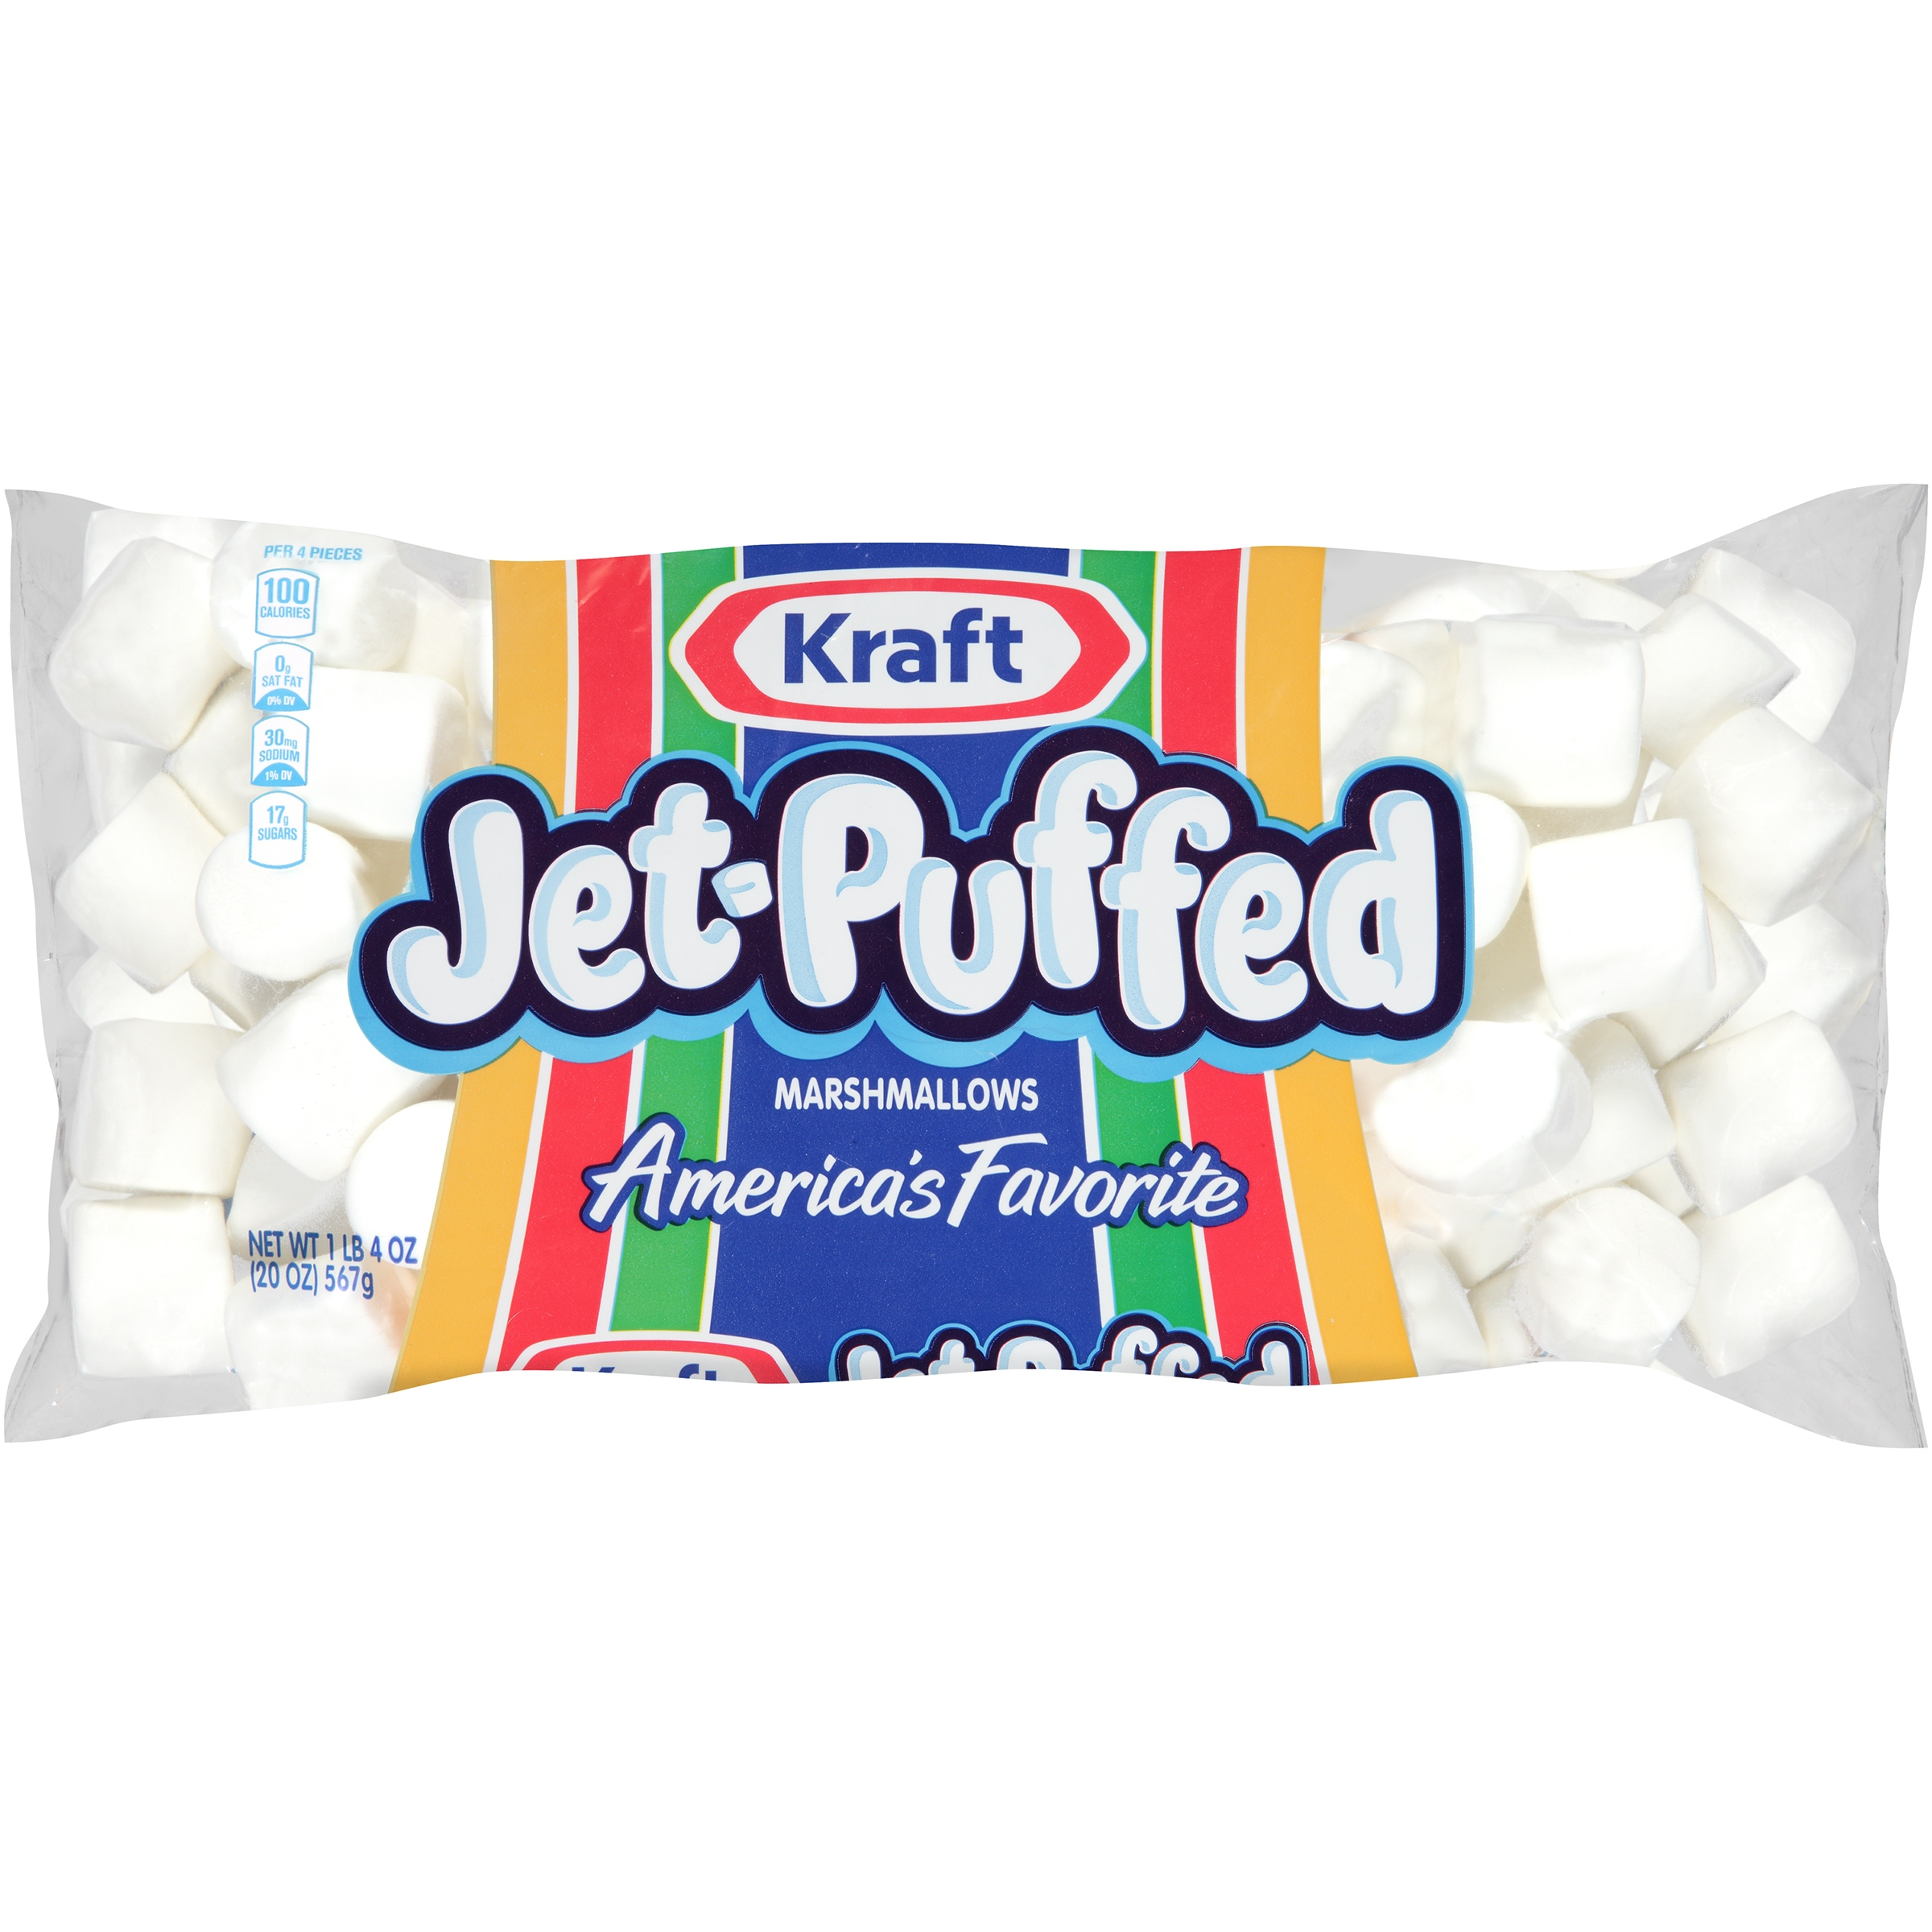 Kraft Jet-Puffed Marshmallows 20 oz, Bag